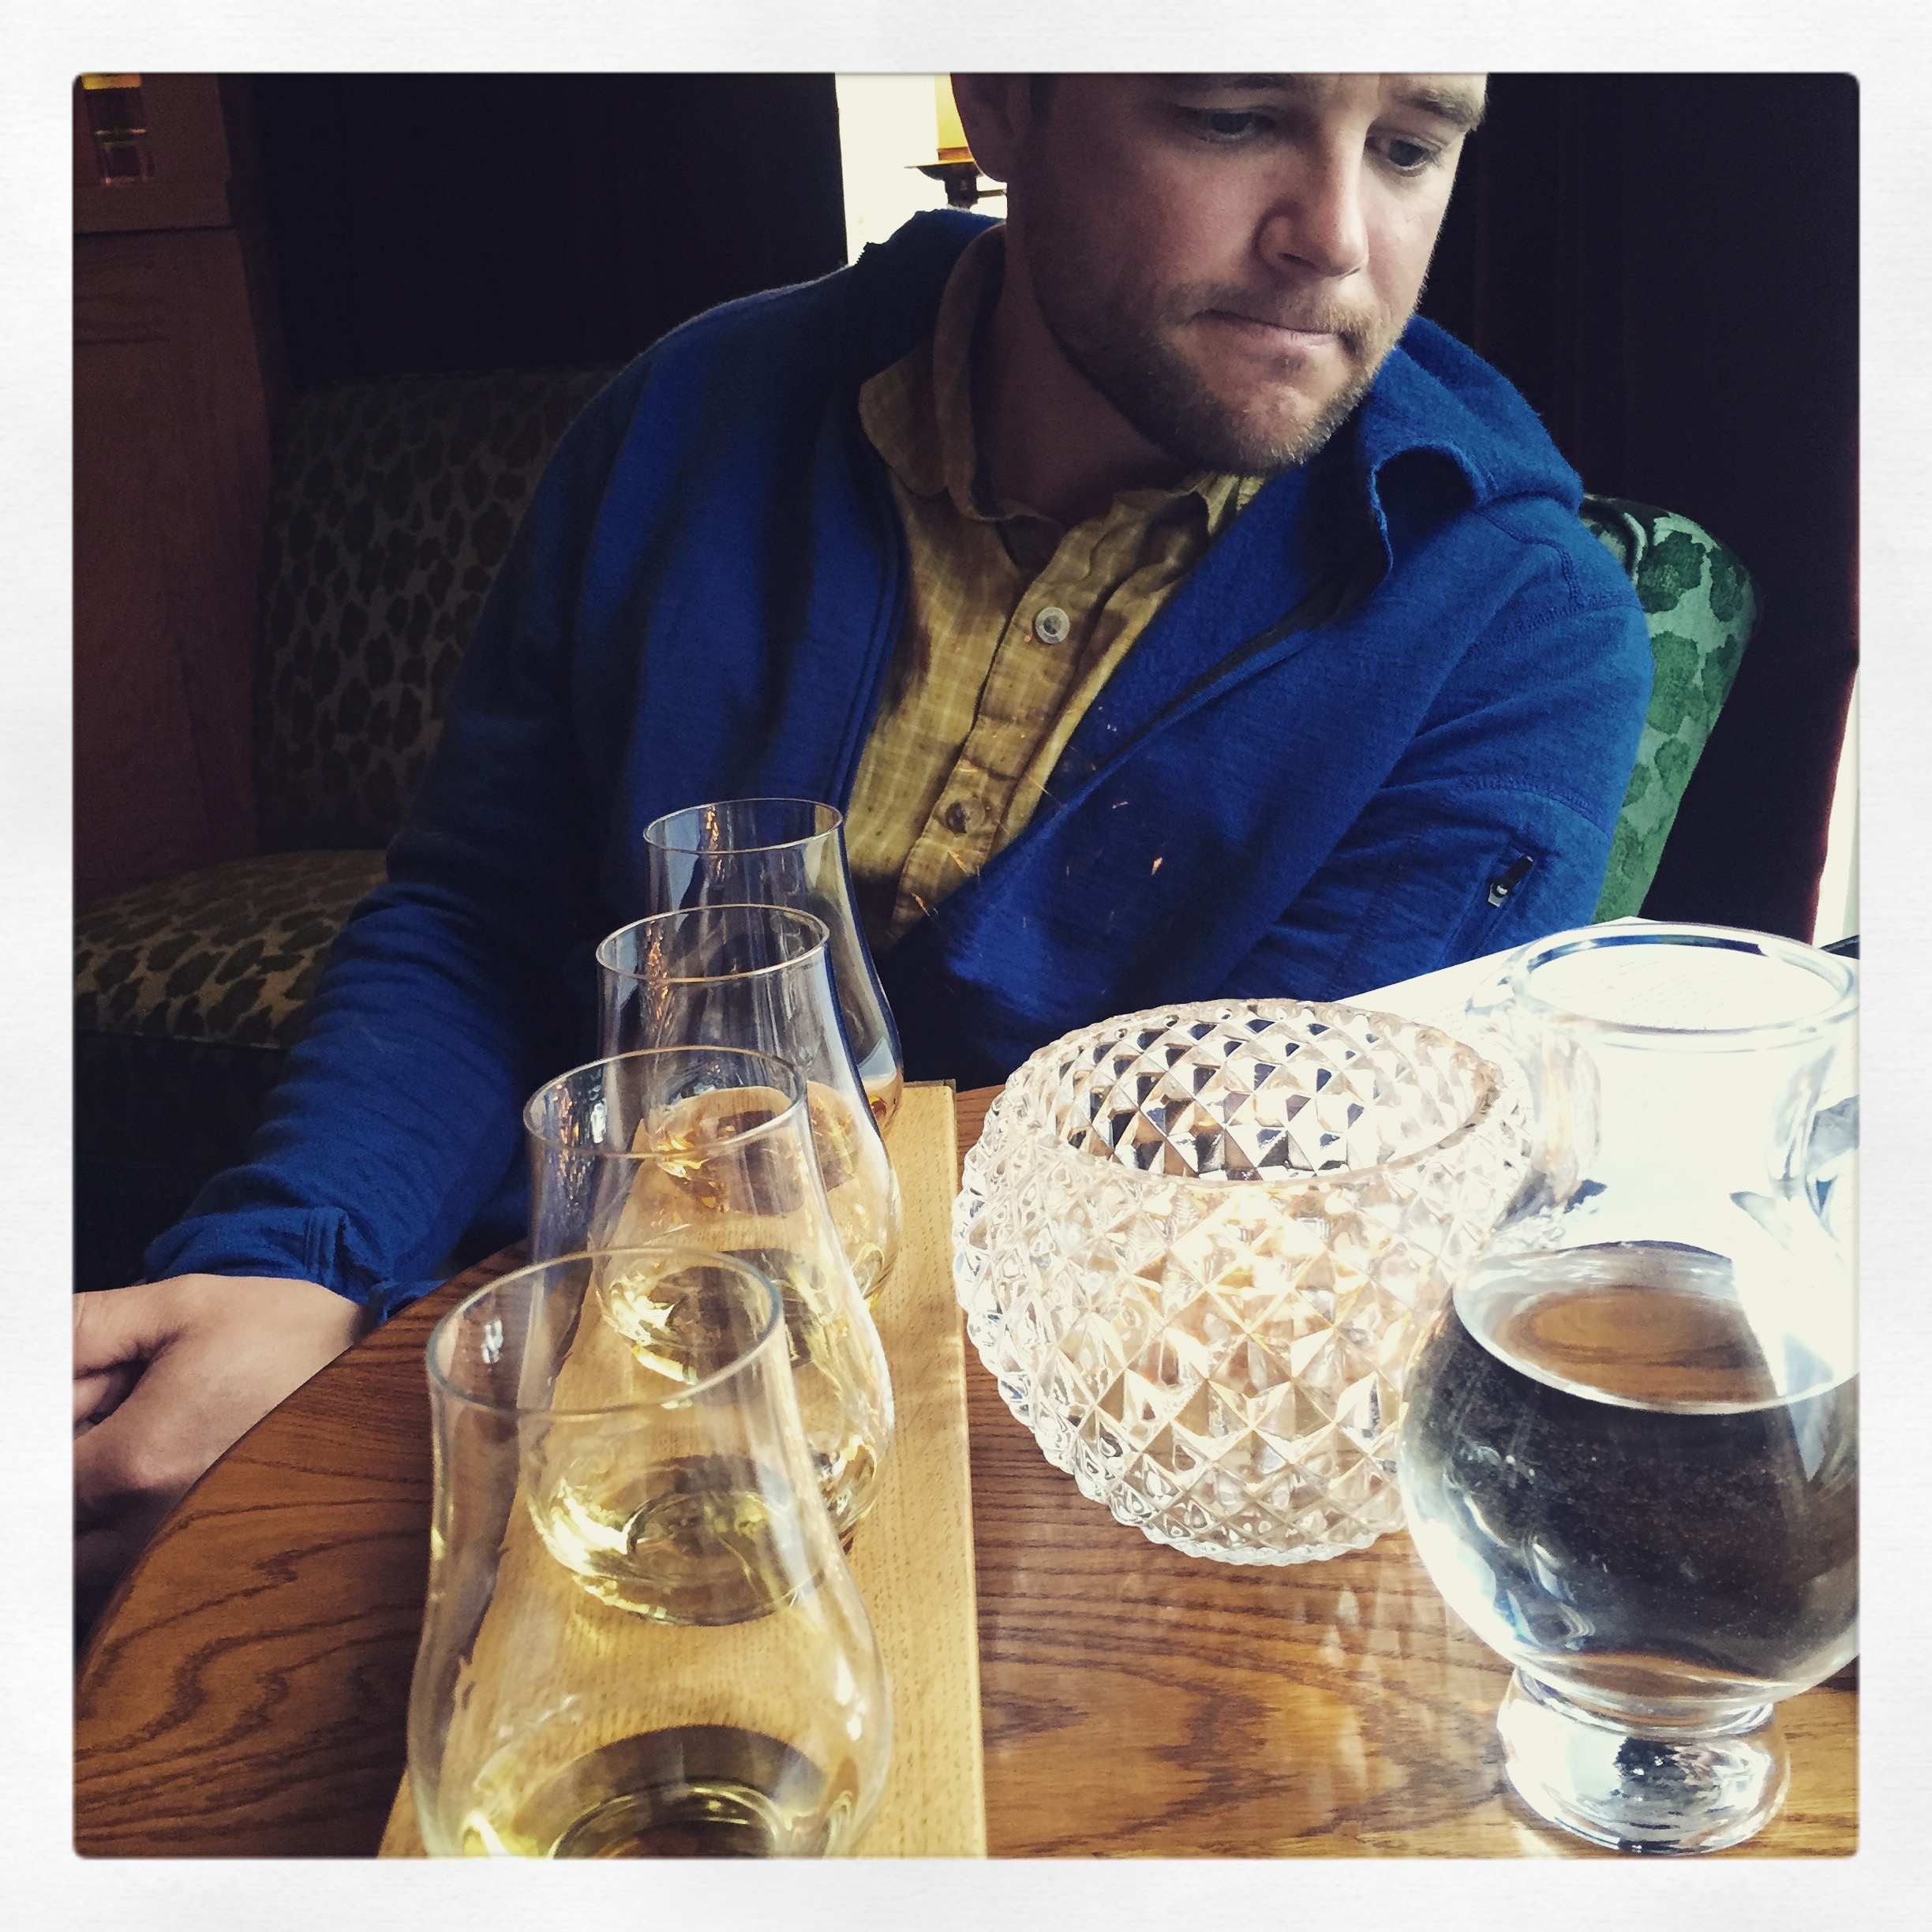 Adam samples some fine Speyside Single malts at the Quiach Bar